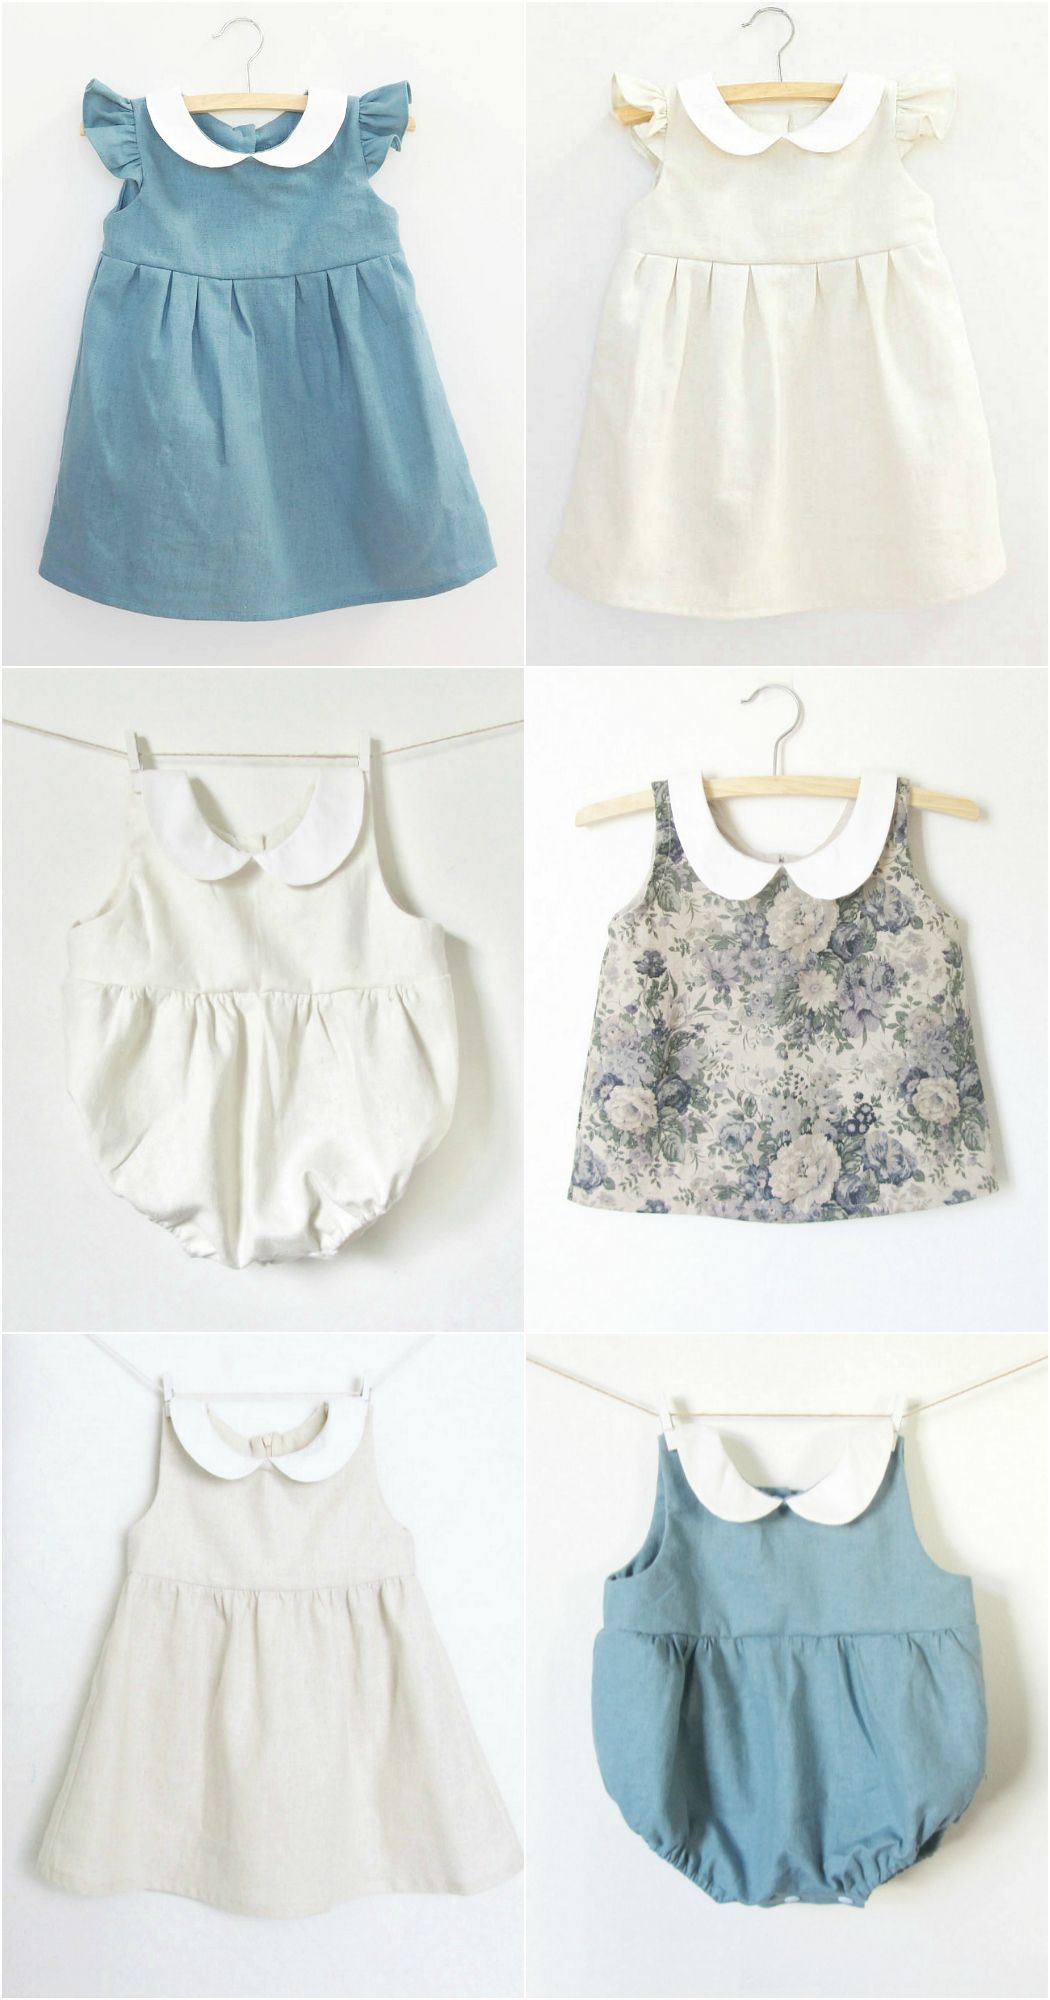 2606f1c5ab2f The Sweetest Handmade Vintage Style Linen Baby Clothes at Dabishoo on Etsy